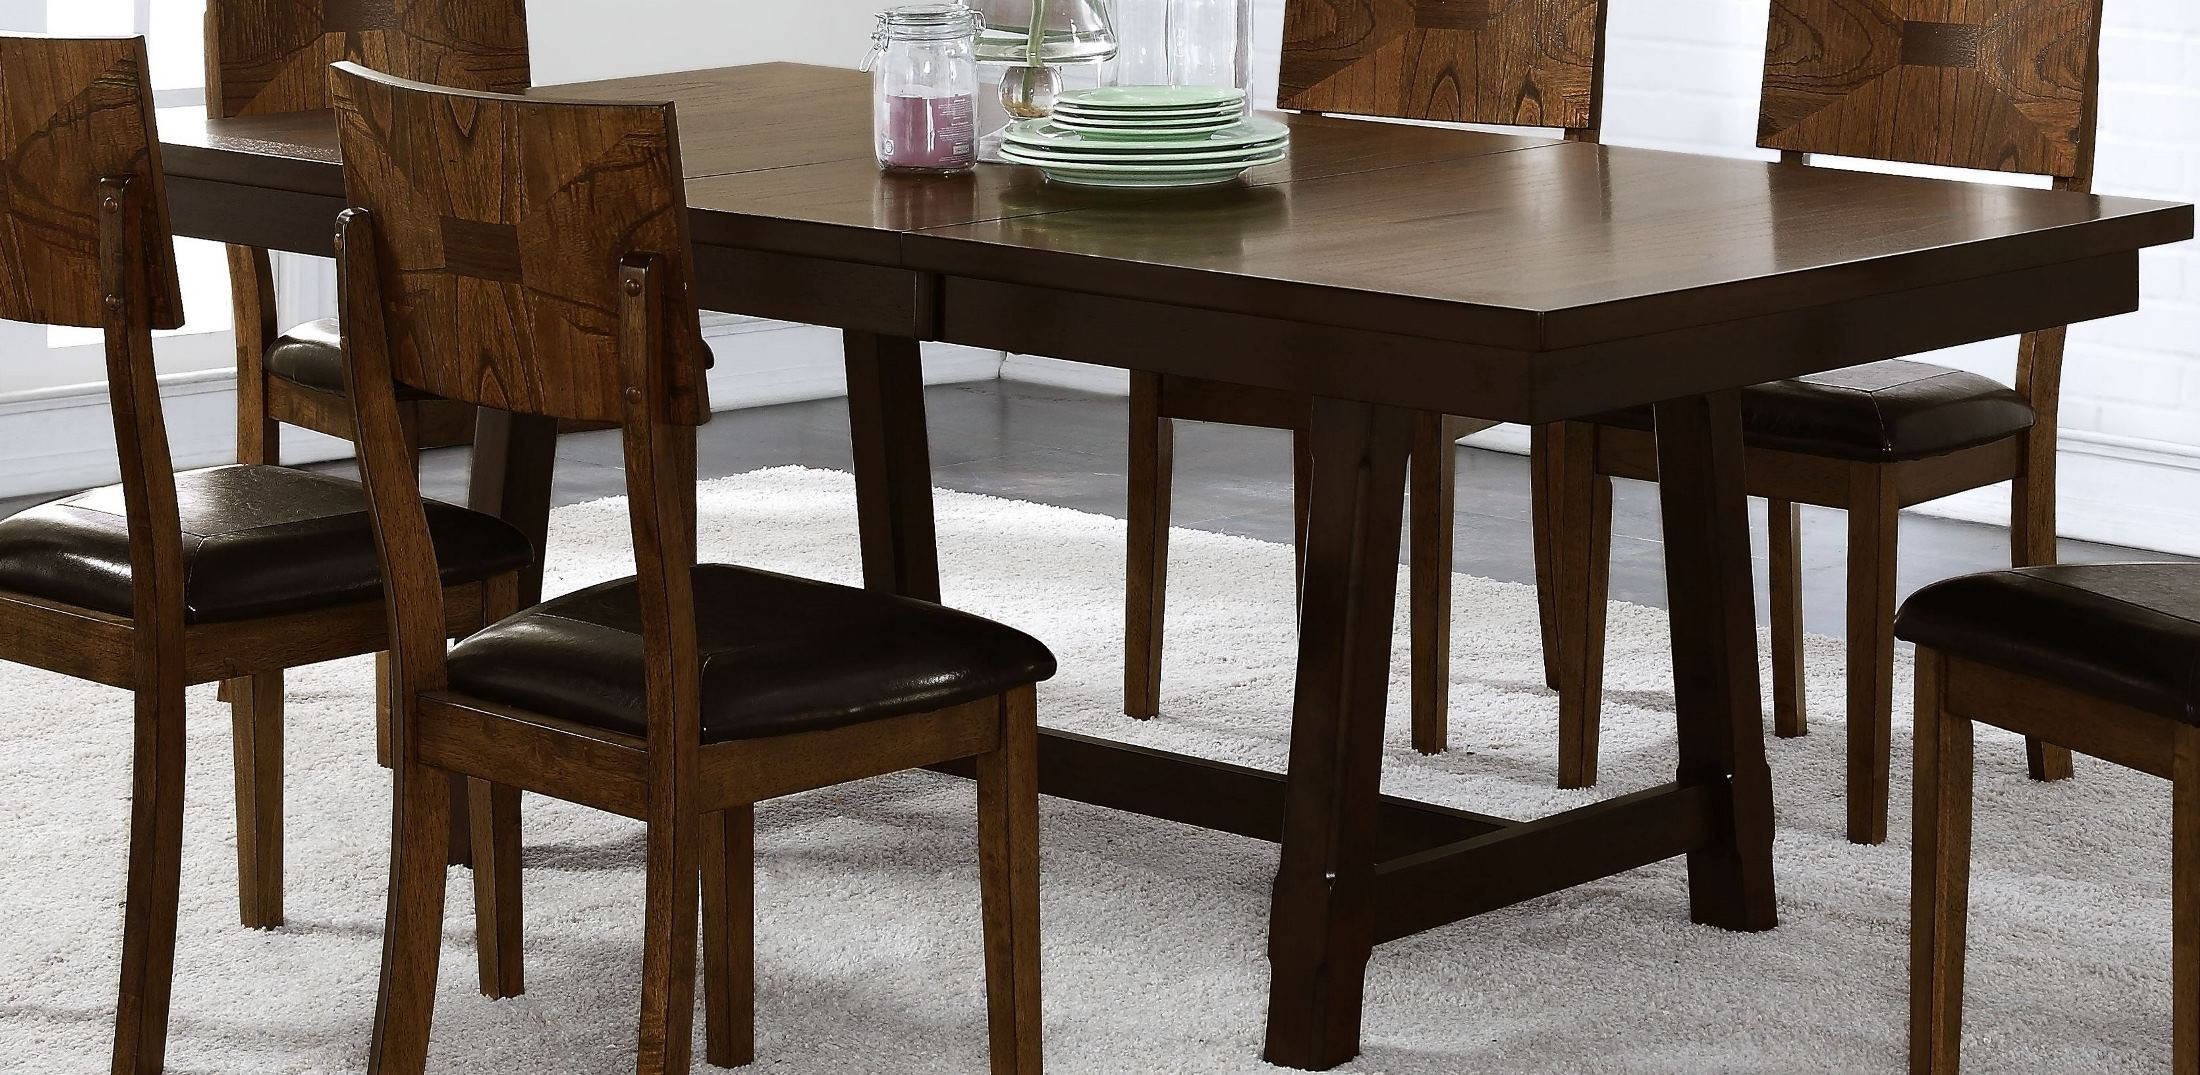 gillian two tone standard dining table from new classic coleman furniture. Black Bedroom Furniture Sets. Home Design Ideas